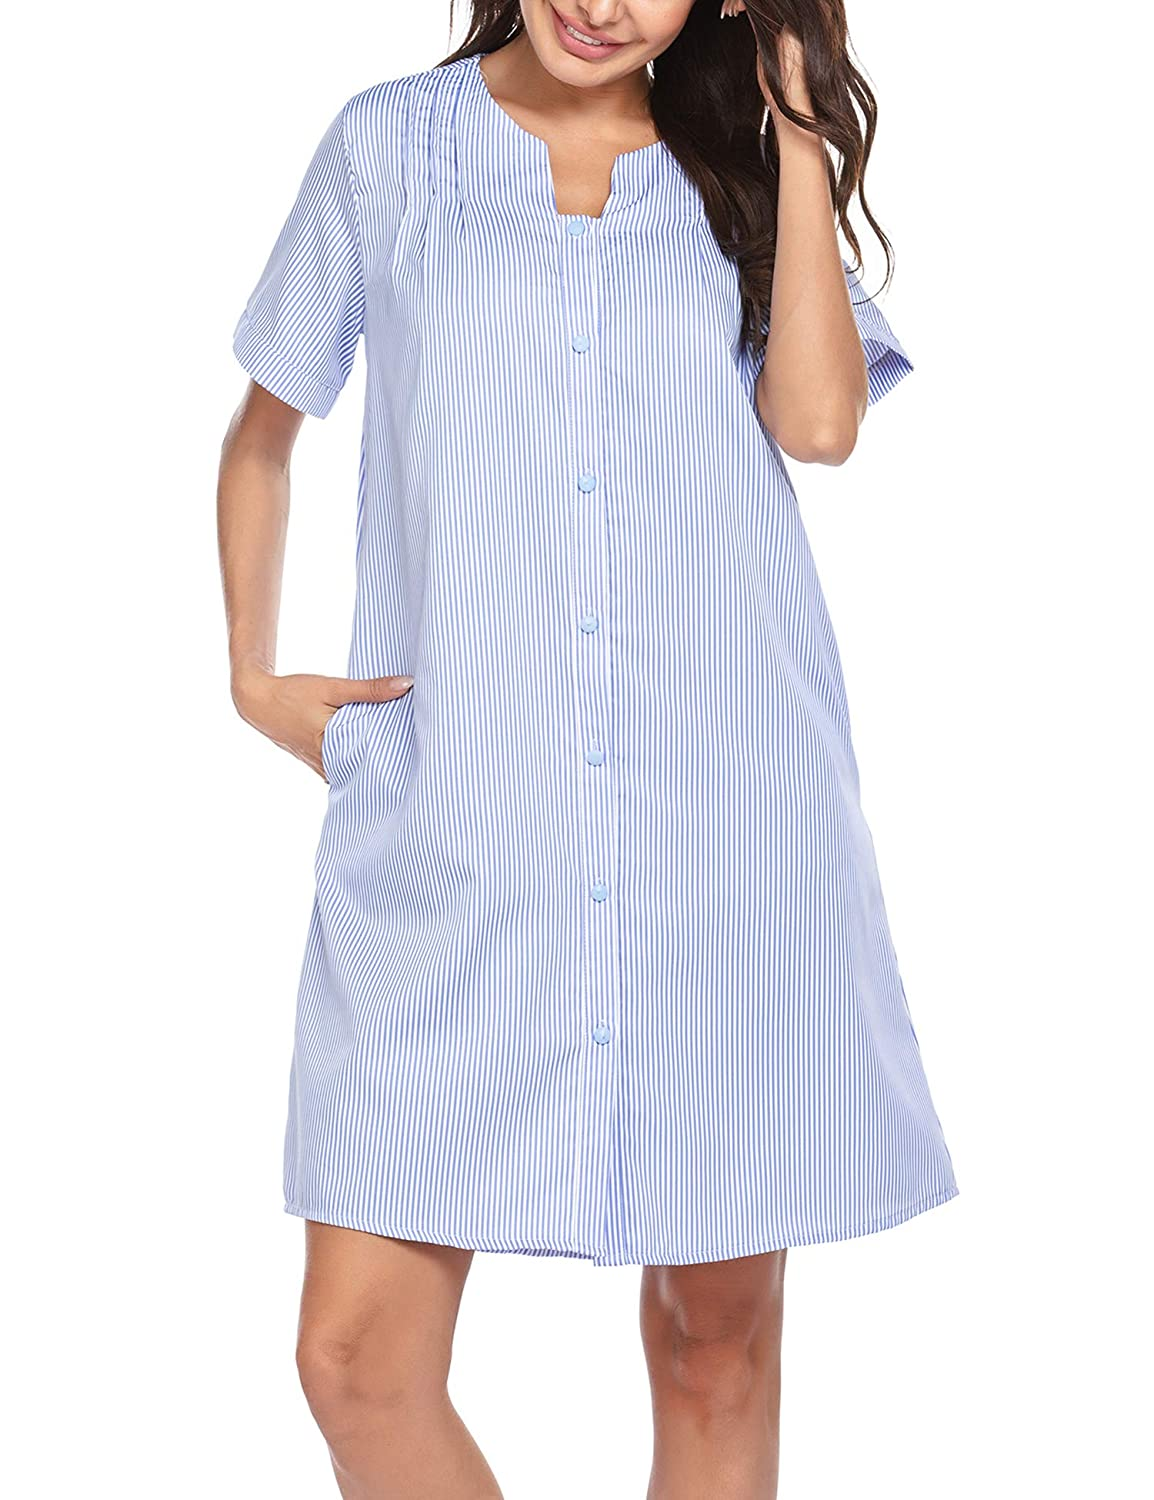 Ekouaer Women Housecoat Button Down Nightgown Short Sleeve House Dress Striped Duster Robe with Pockets S-XXL